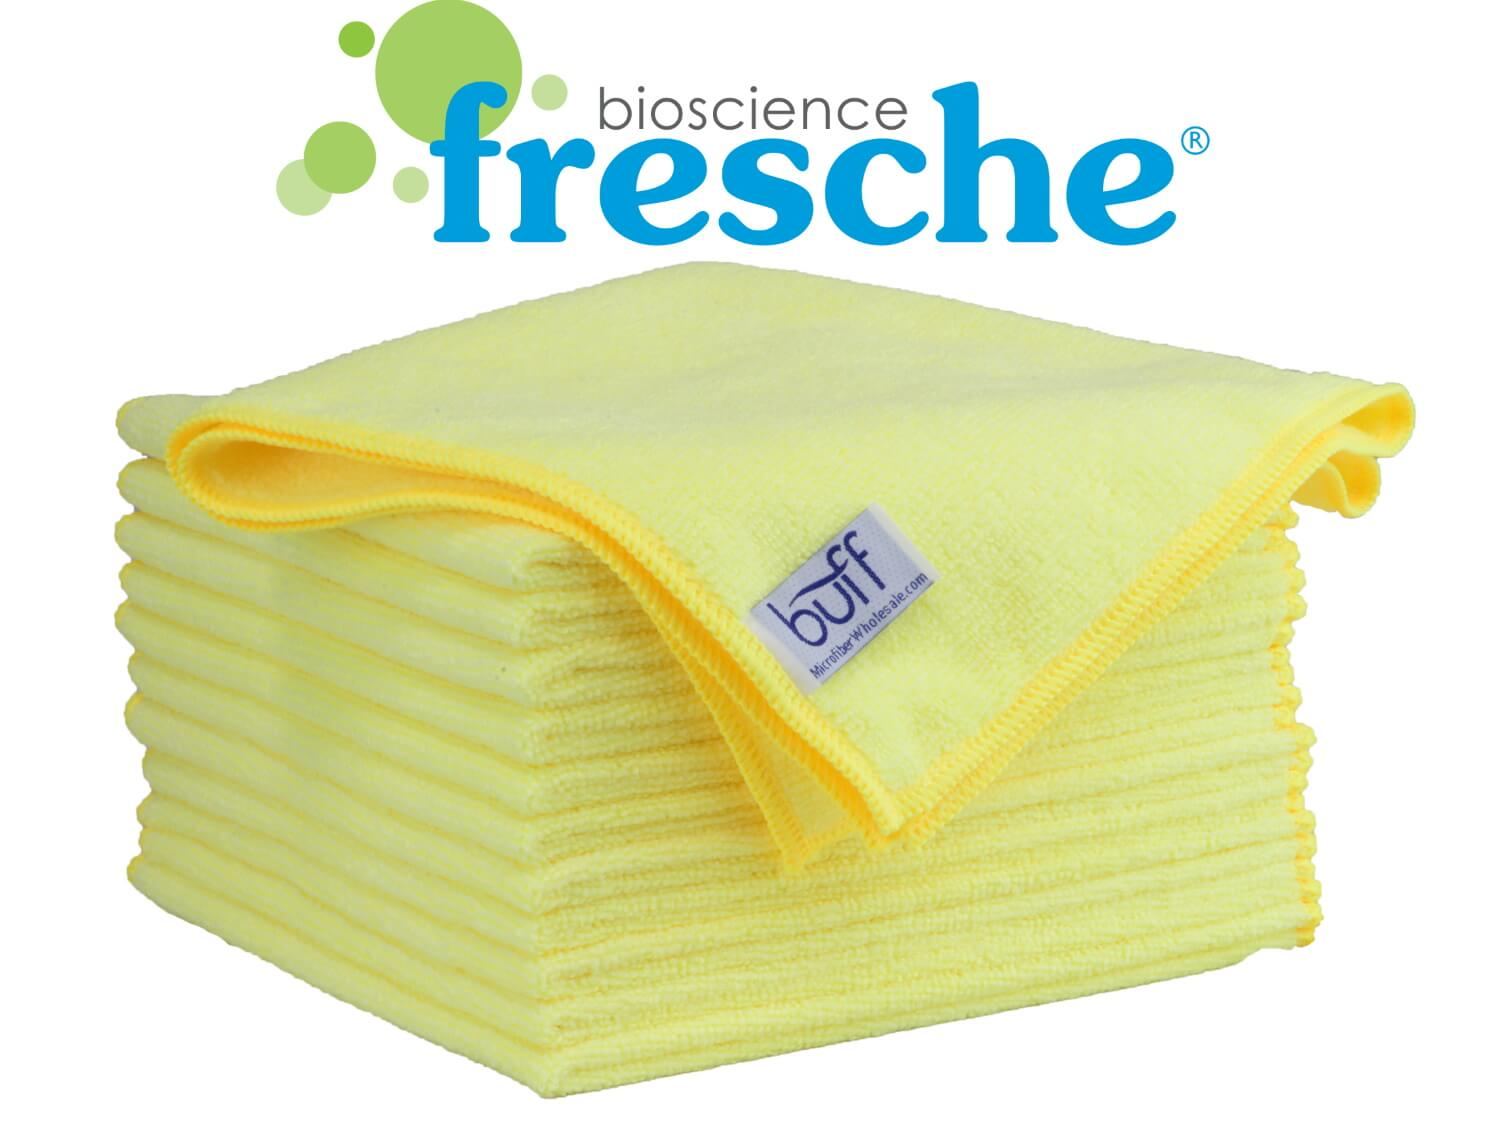 buff™ pro antimicrobial microfiber towel with fresche® logo